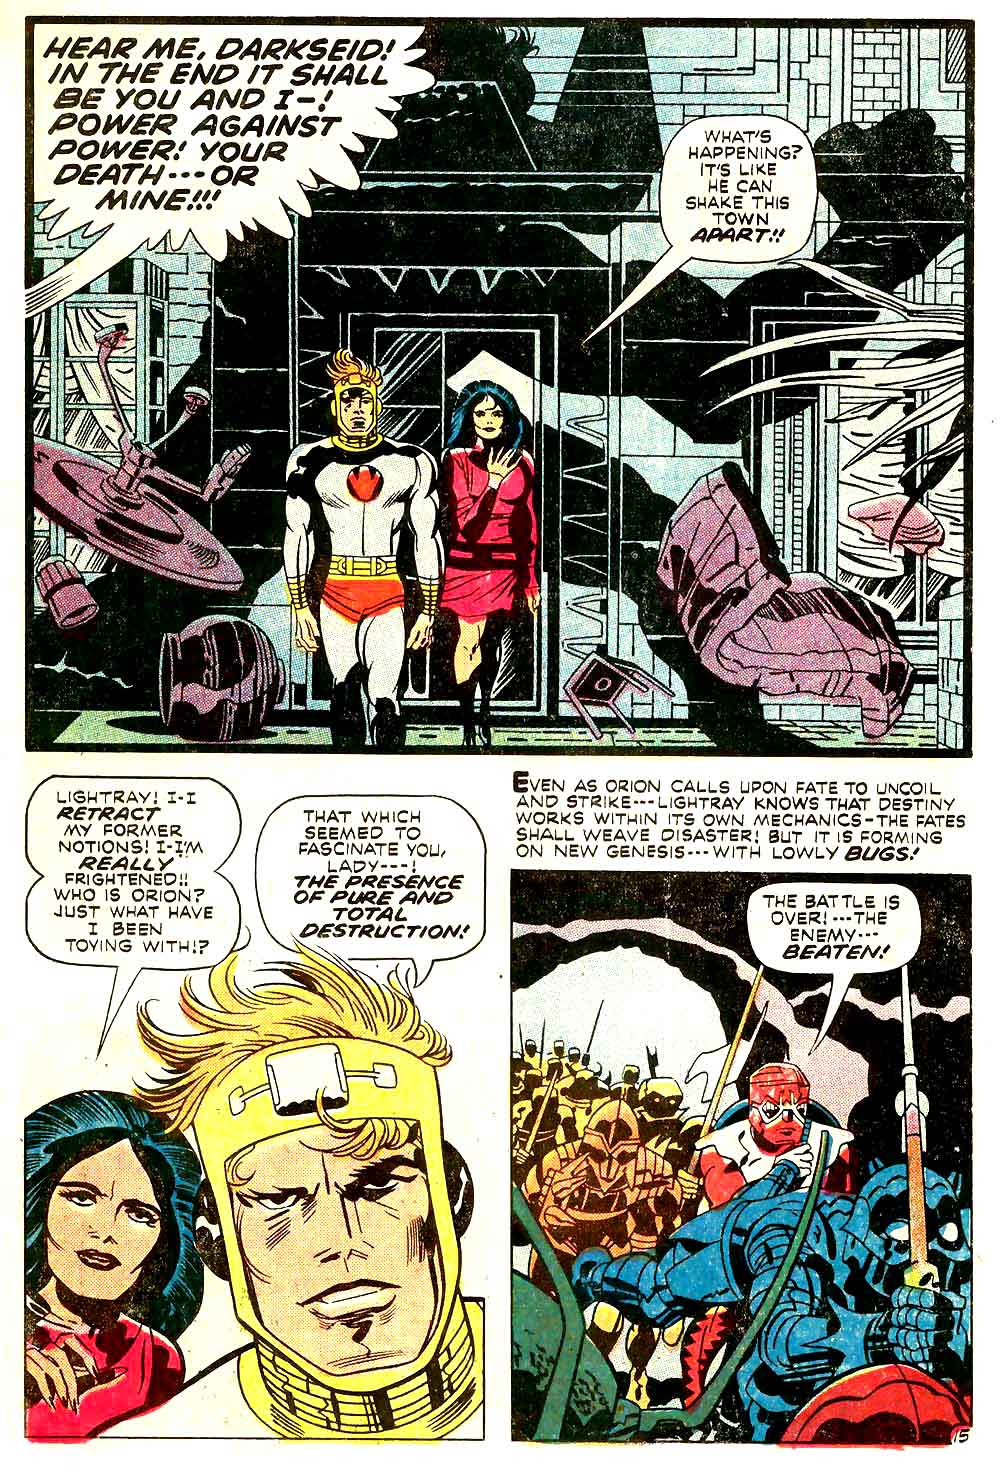 New Gods v1 #9 dc bronze age comic book page art by Jack Kirby